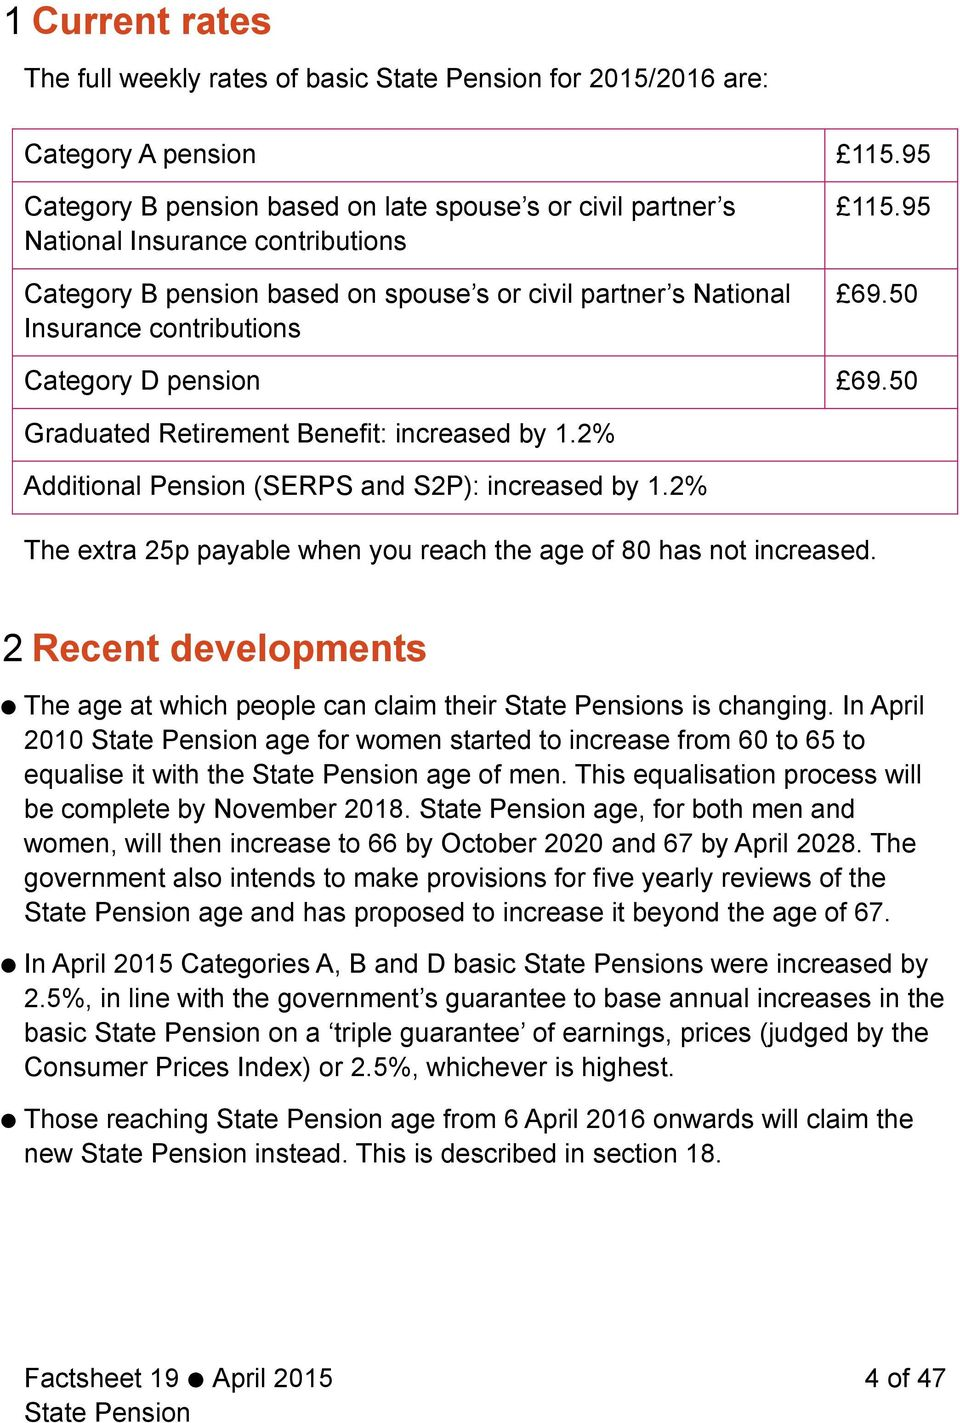 50 Category D pension 69.50 Graduated Retirement Benefit: increased by 1.2% Additional Pension (SERPS and S2P): increased by 1.2% The extra 25p payable when you reach the age of 80 has not increased.